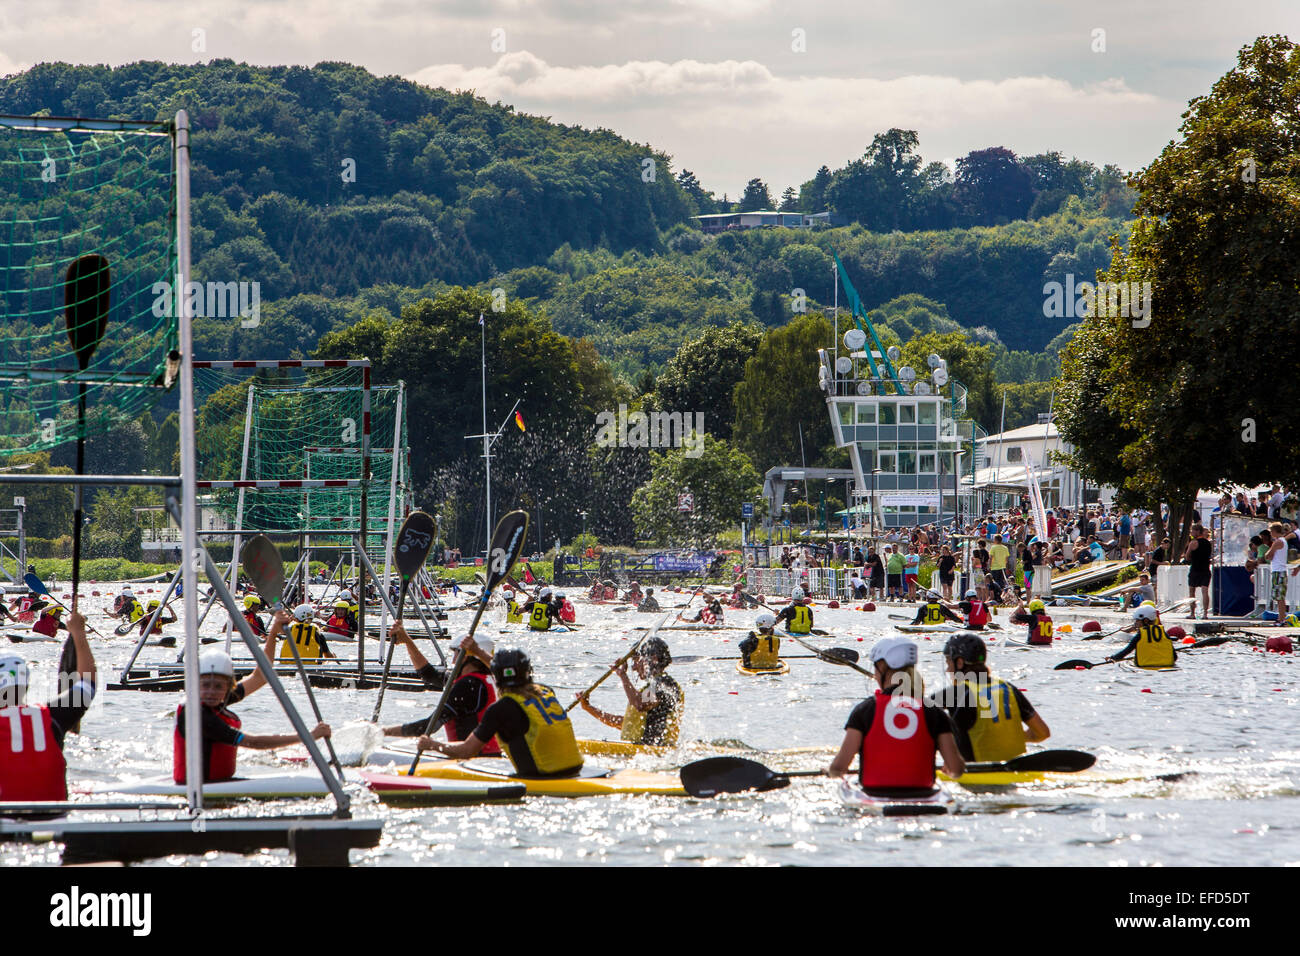 Biggest canoe polo tournament at 'Baldeneysee' lake, river Ruhr, in Essen, Germany, with over 1300 participants, - Stock Image